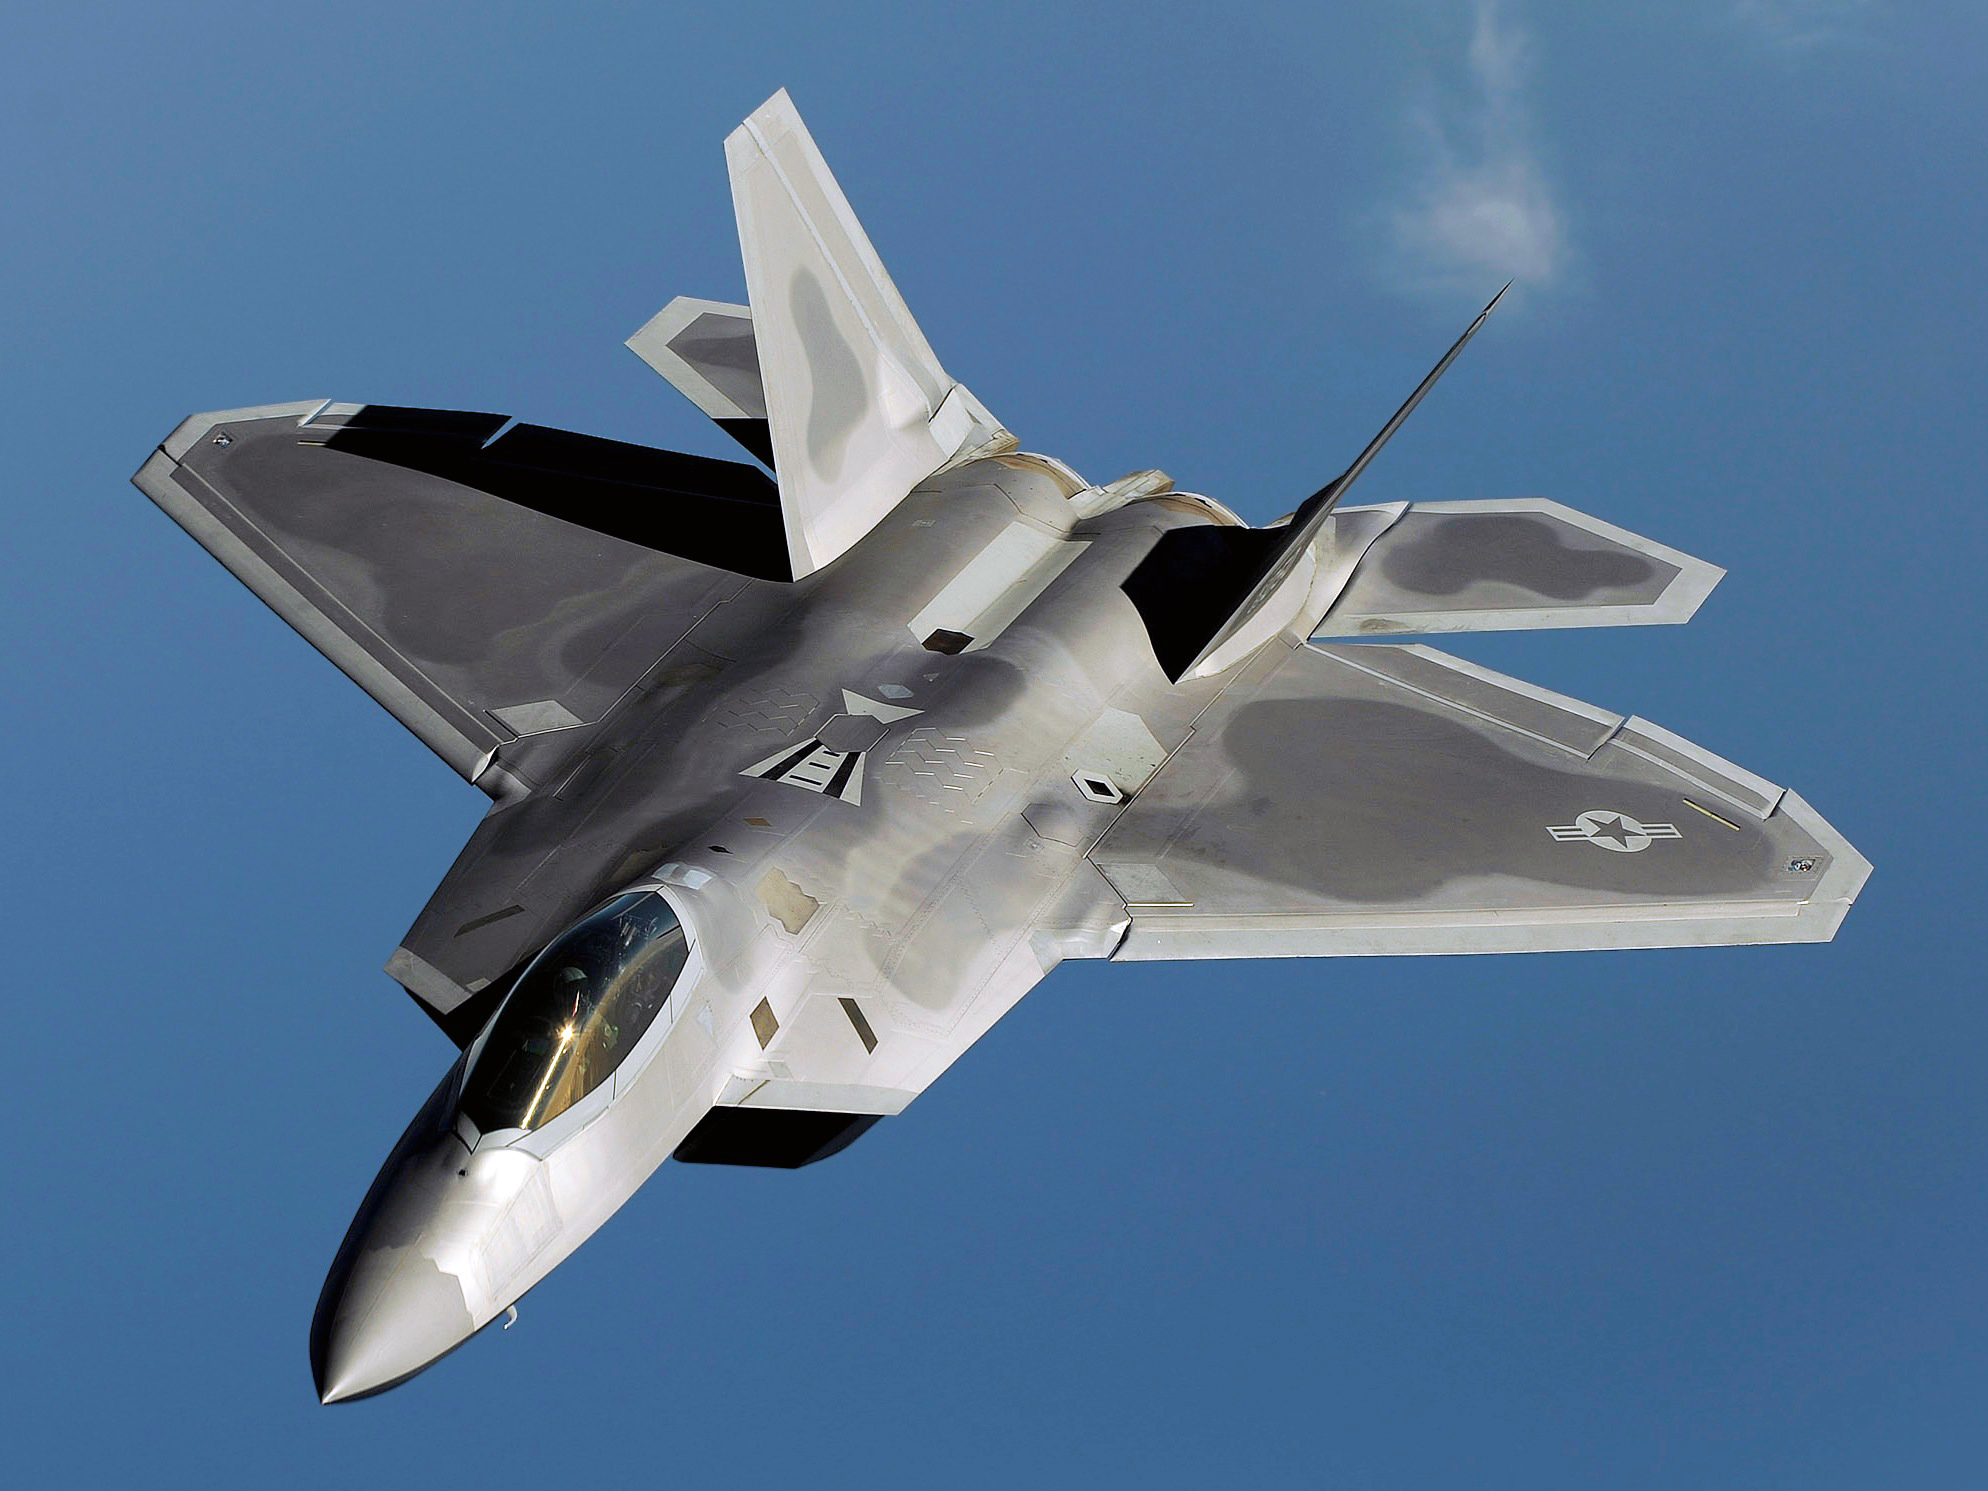 Meet the T-Rex: The F-22 Raptor Transforms Into a Bomber